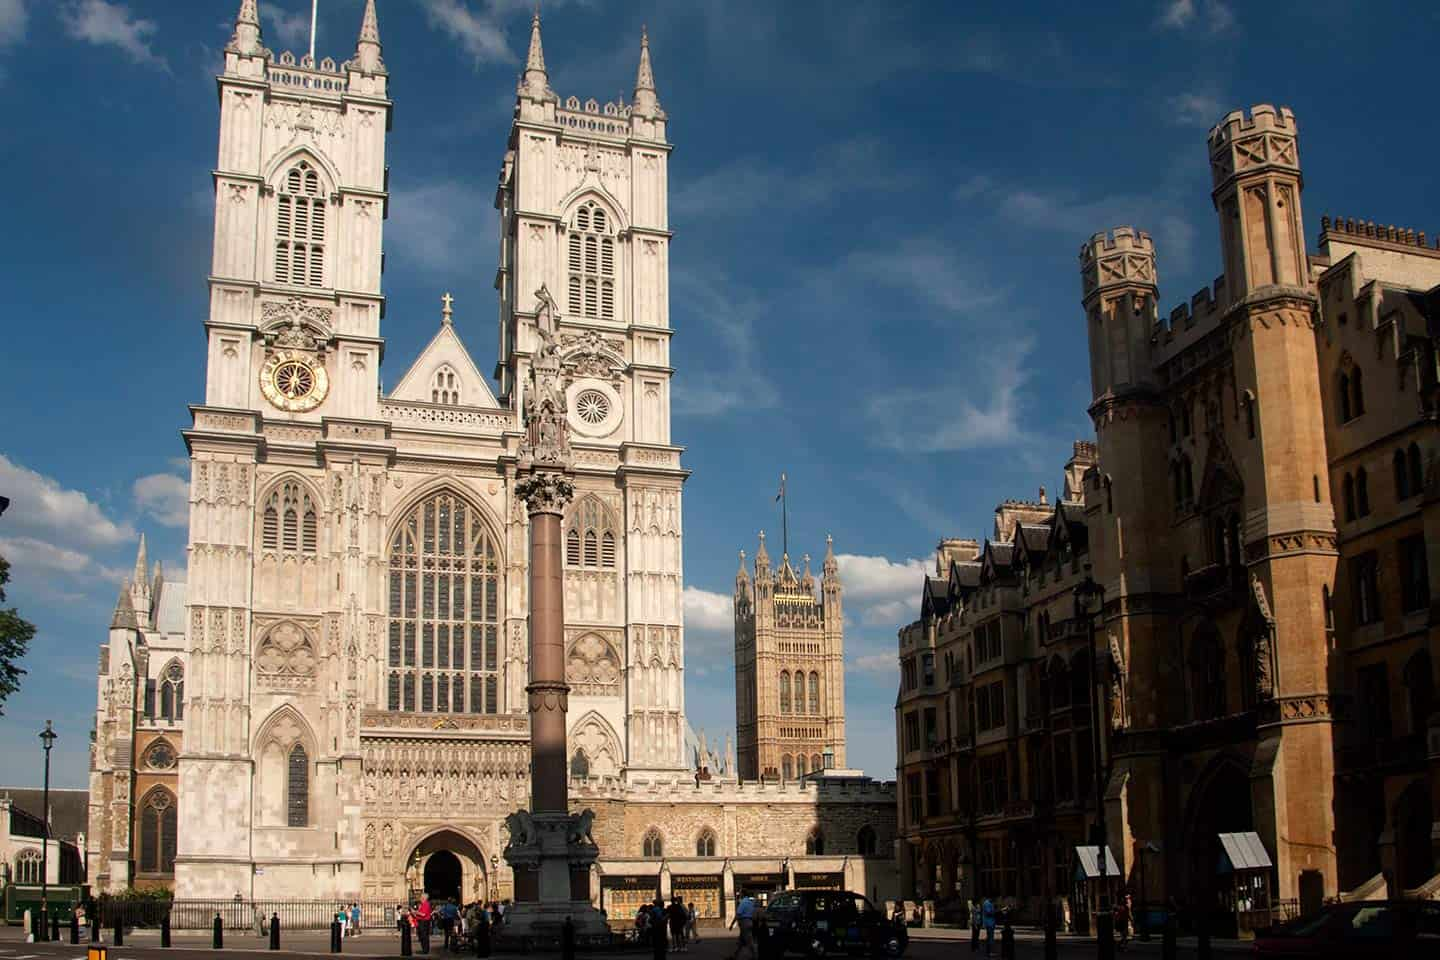 Must see places in London Image of westminster Abbey church